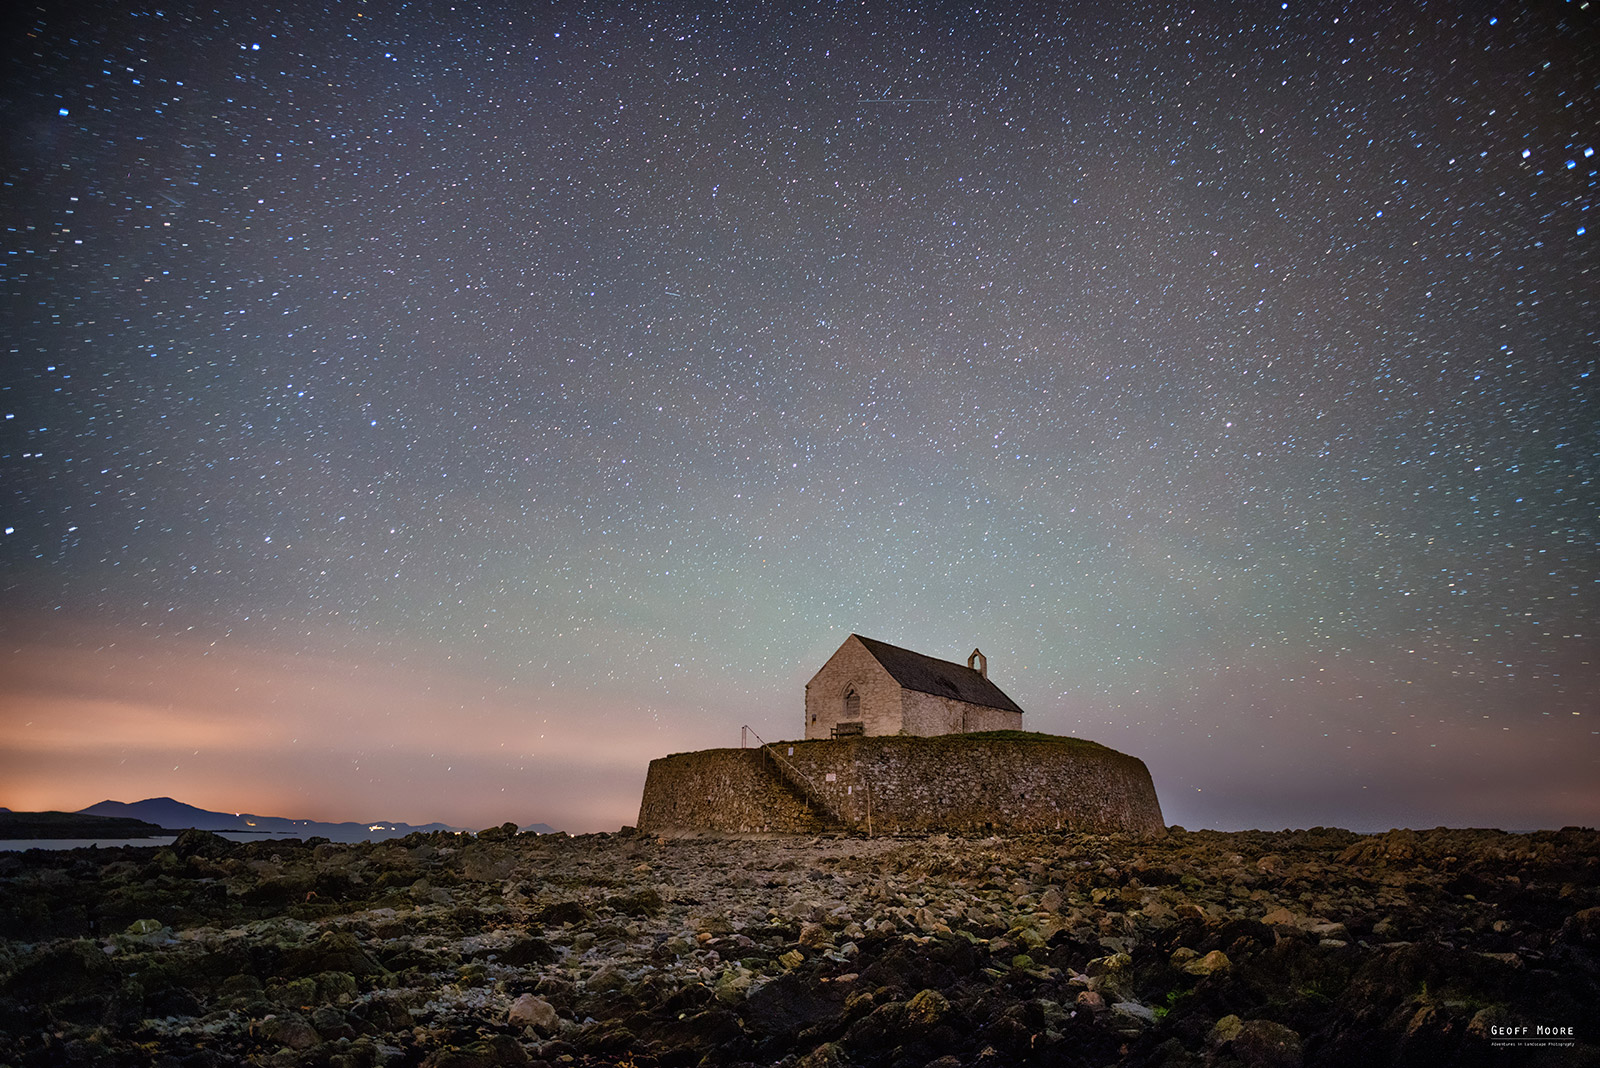 A Rocky Church & A Minty Night Sky